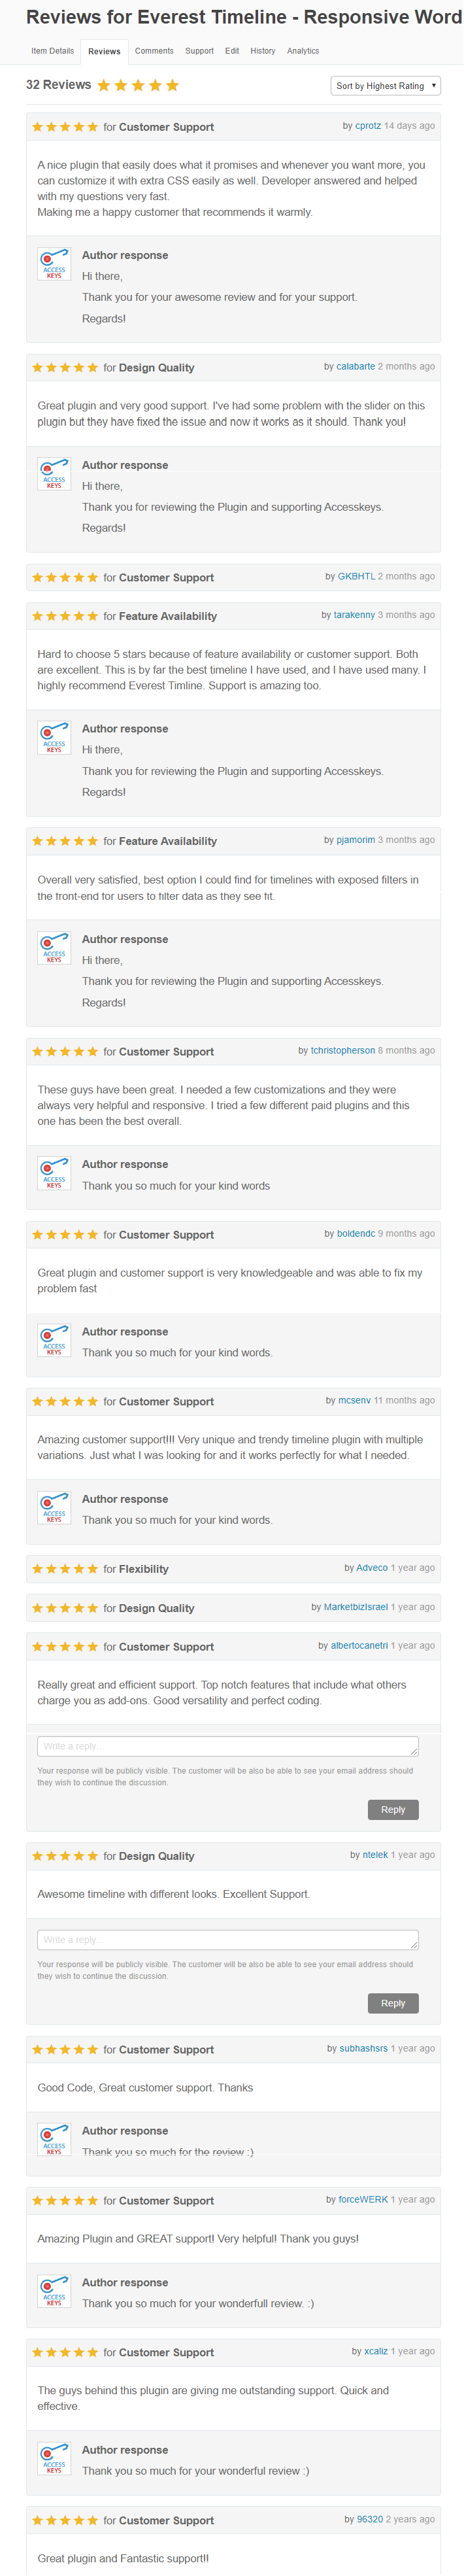 Everest Timeline WordPress Plugin Users Review